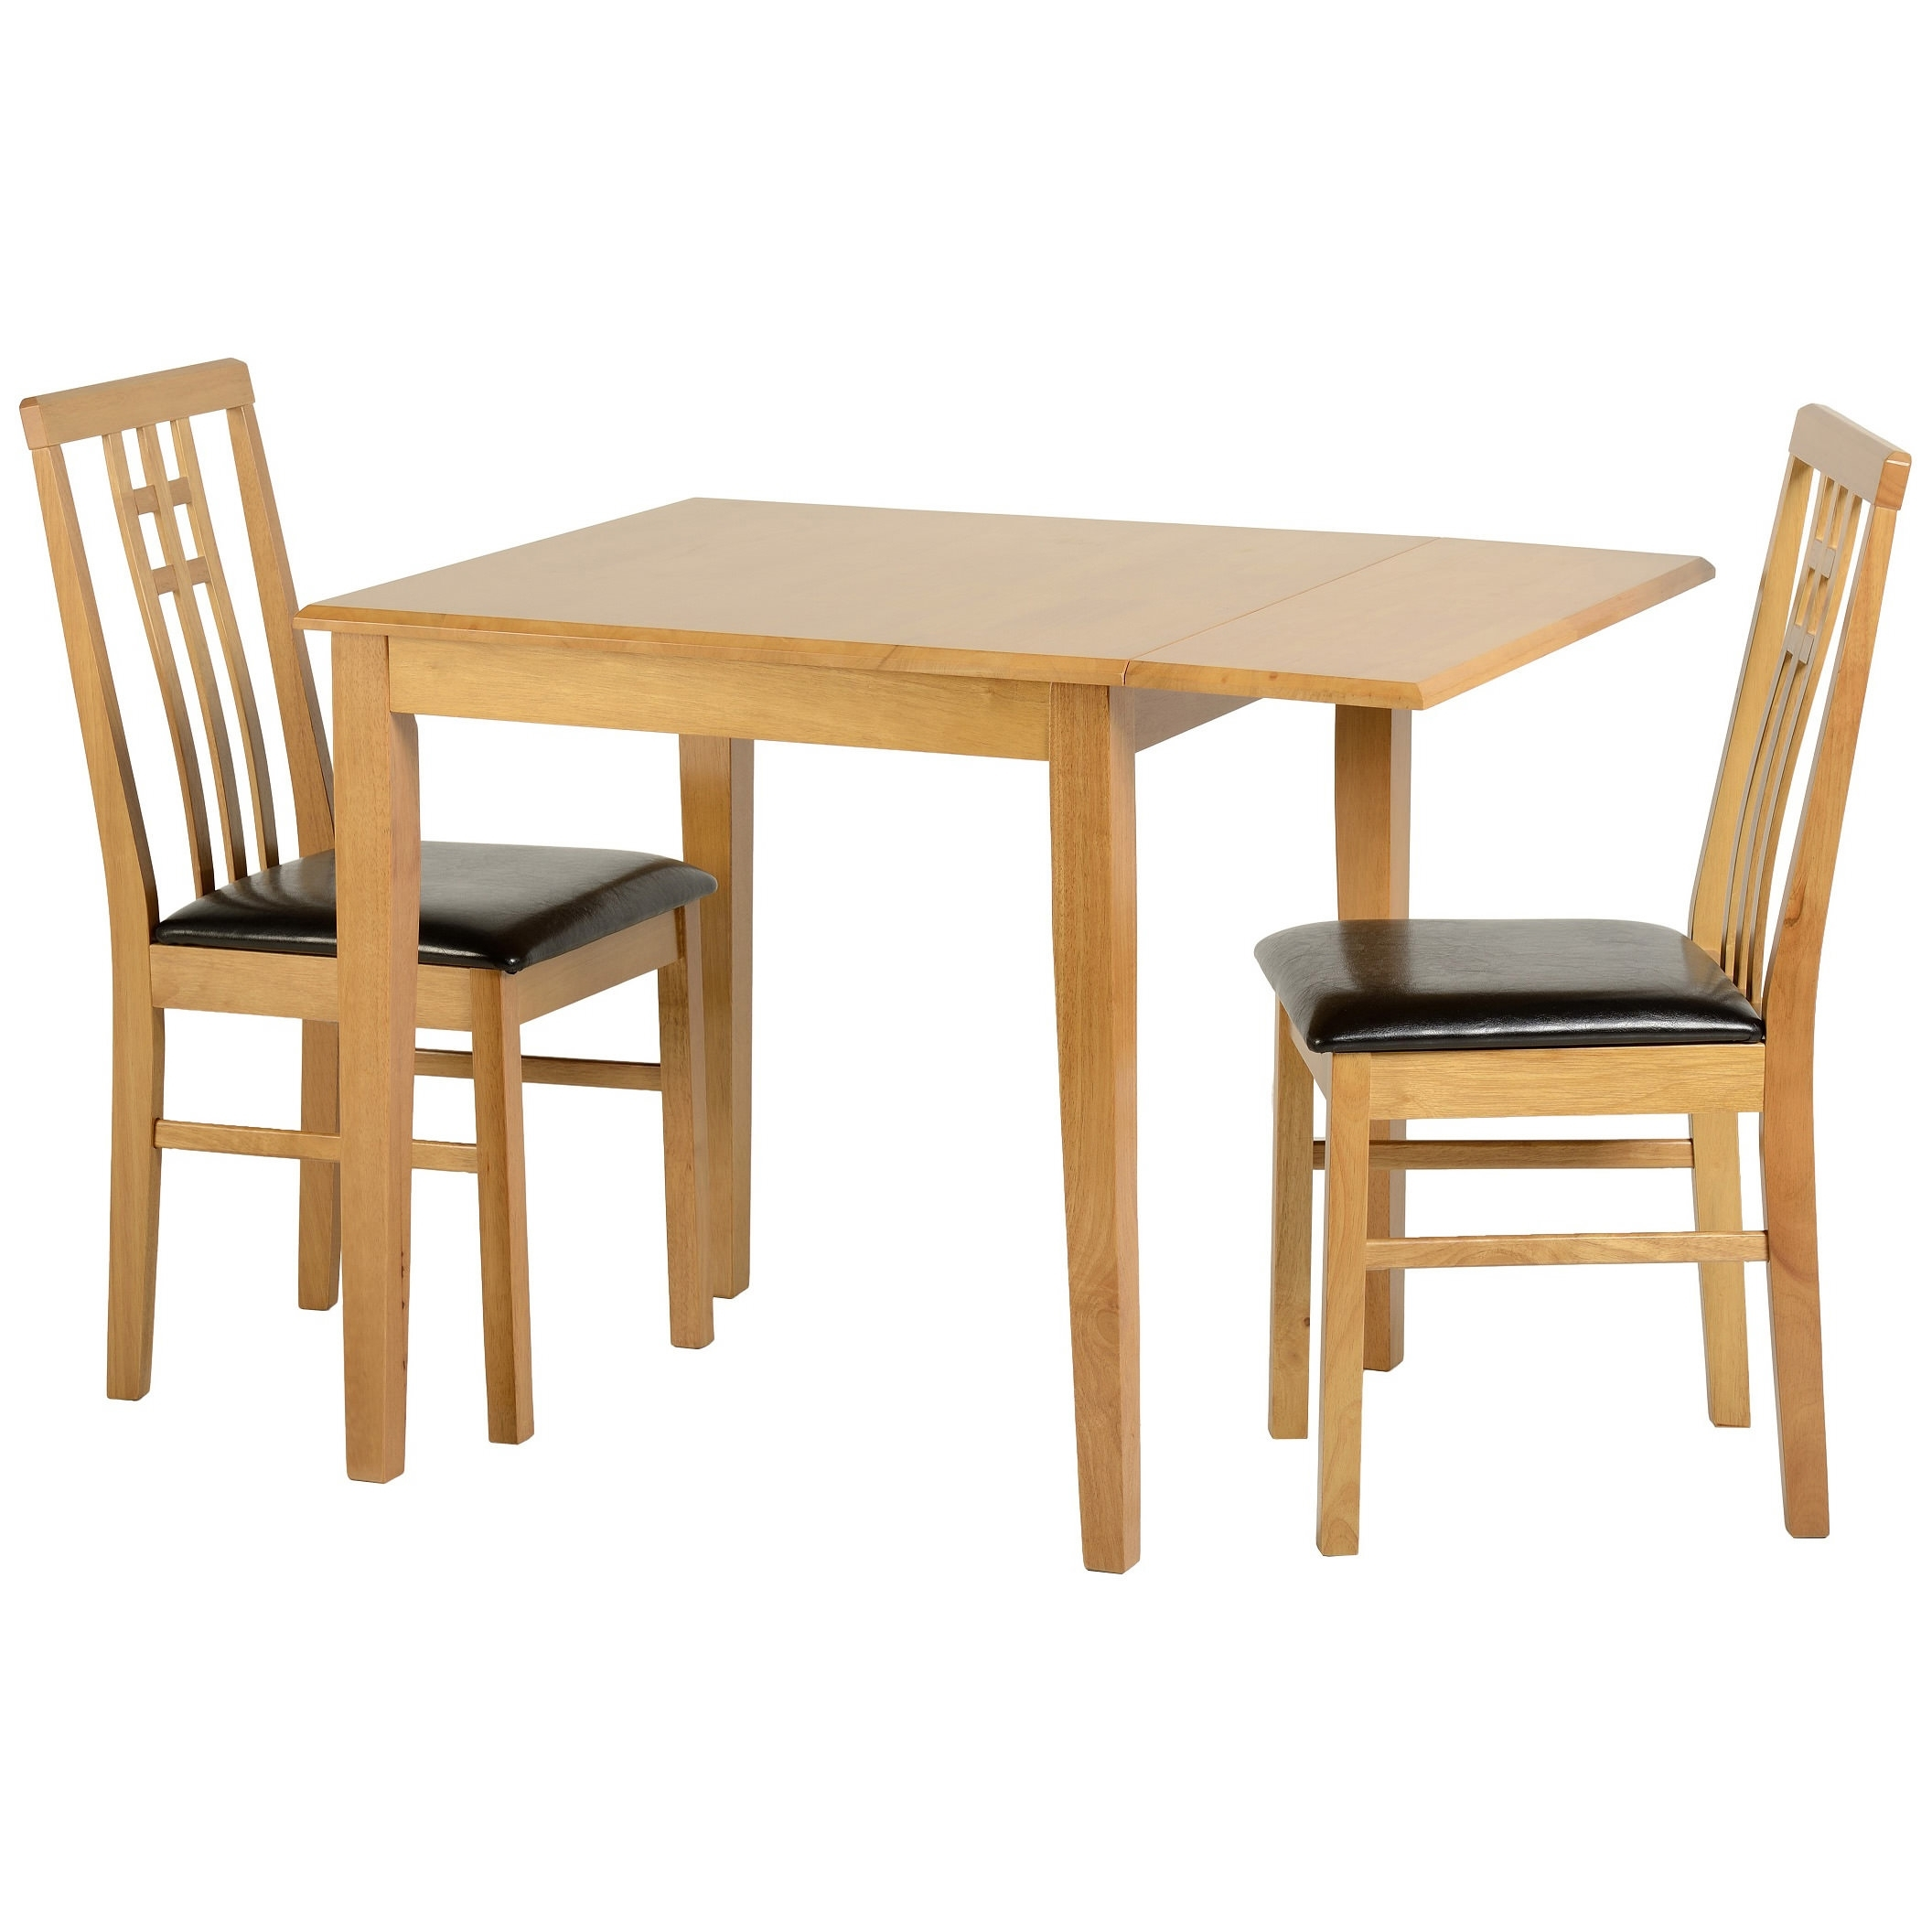 Oak Square Extending Extendable Dining Table And Chair Set With 2 Throughout Famous Square Extendable Dining Tables (View 24 of 25)